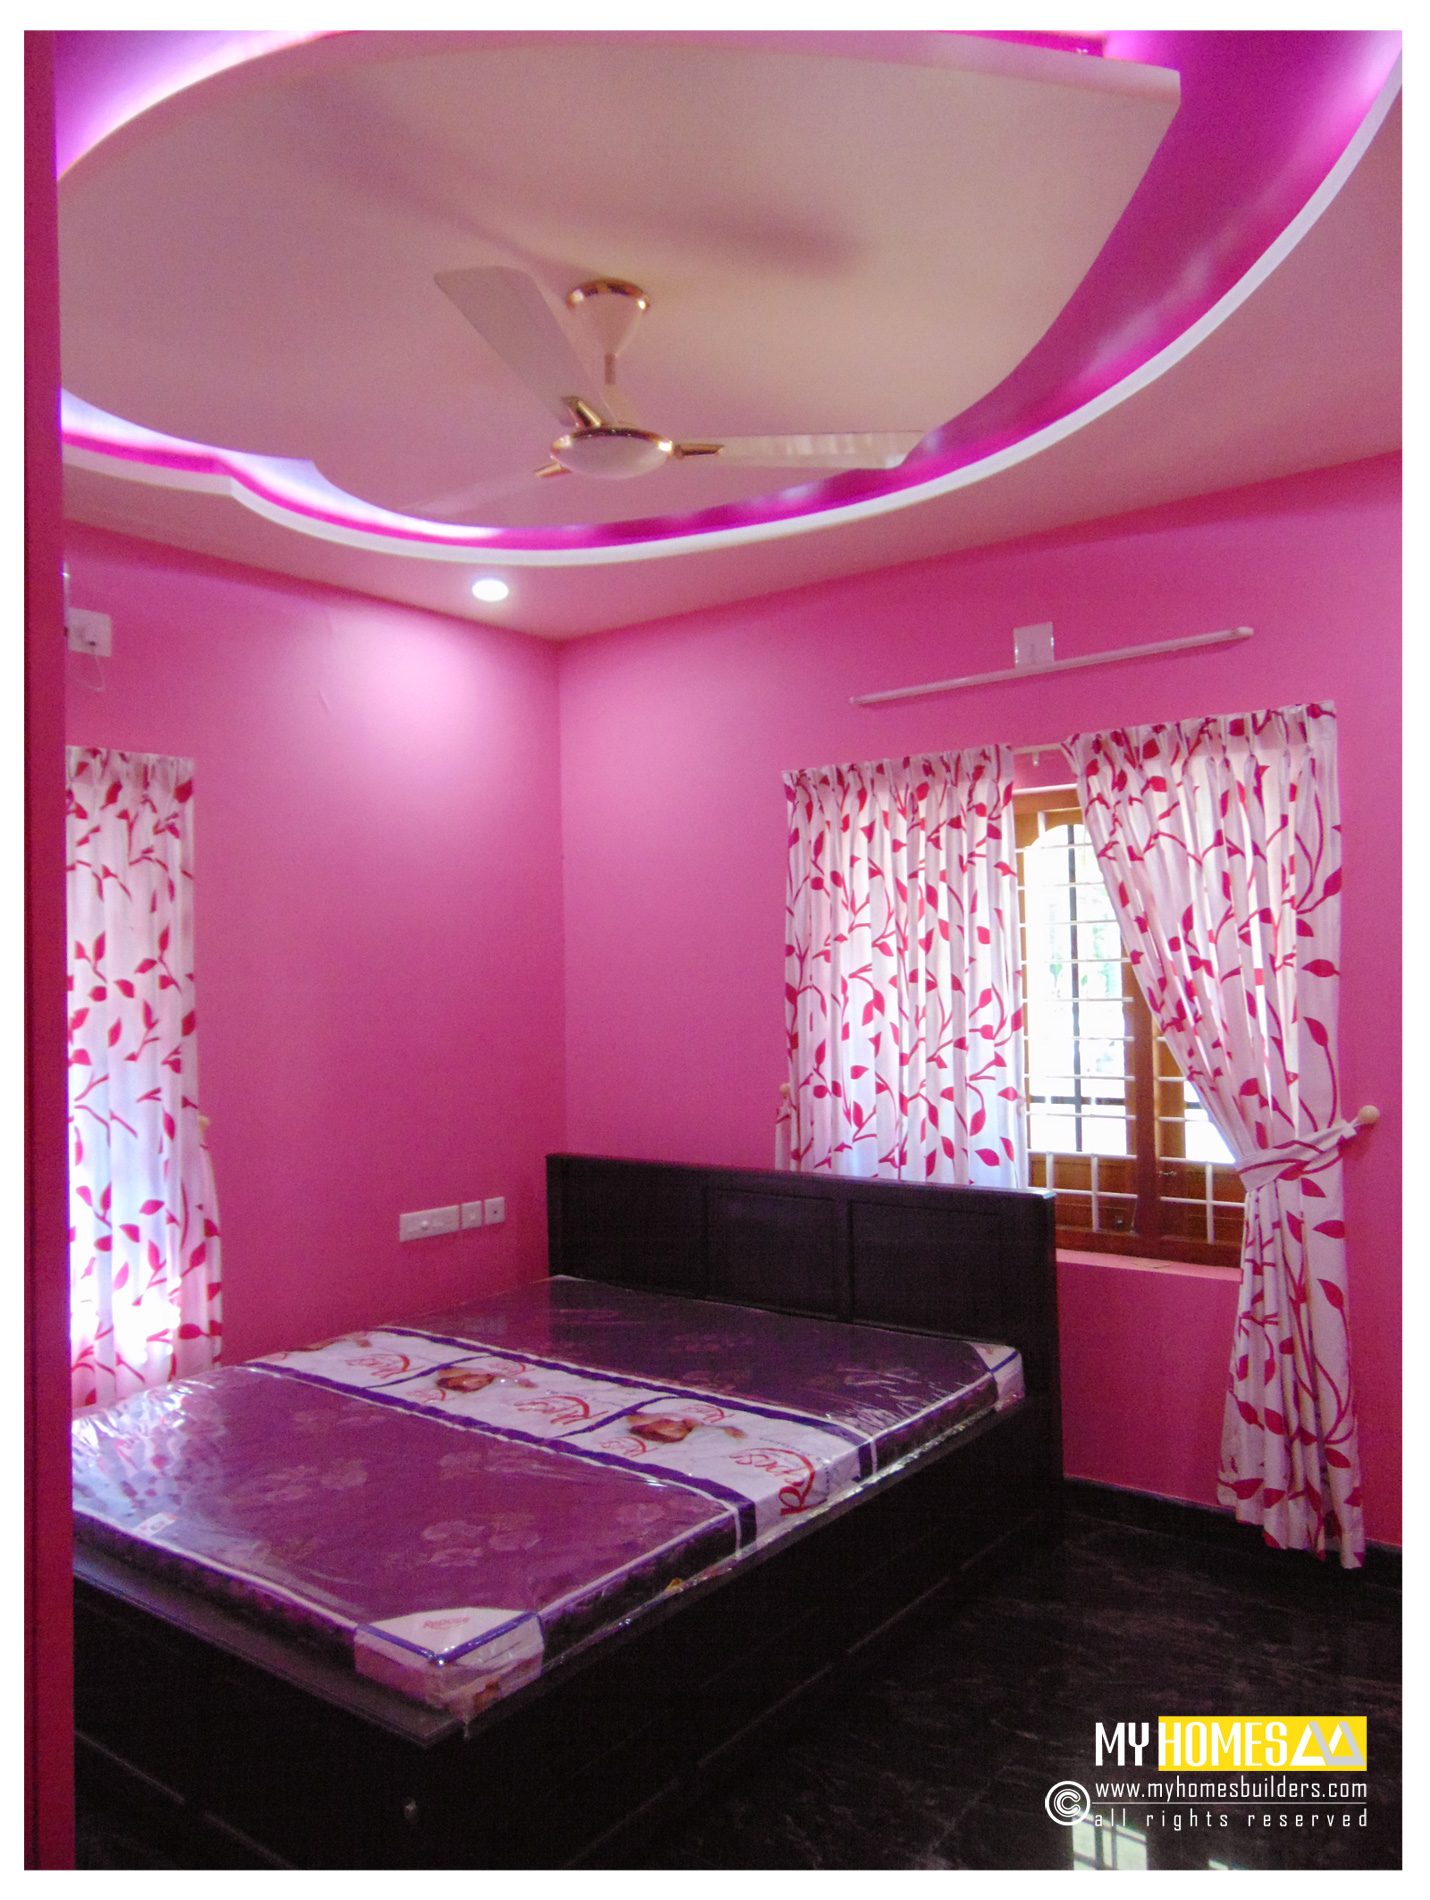 Simple style kerala bedroom designs ideas for home interior for New home design ideas kerala